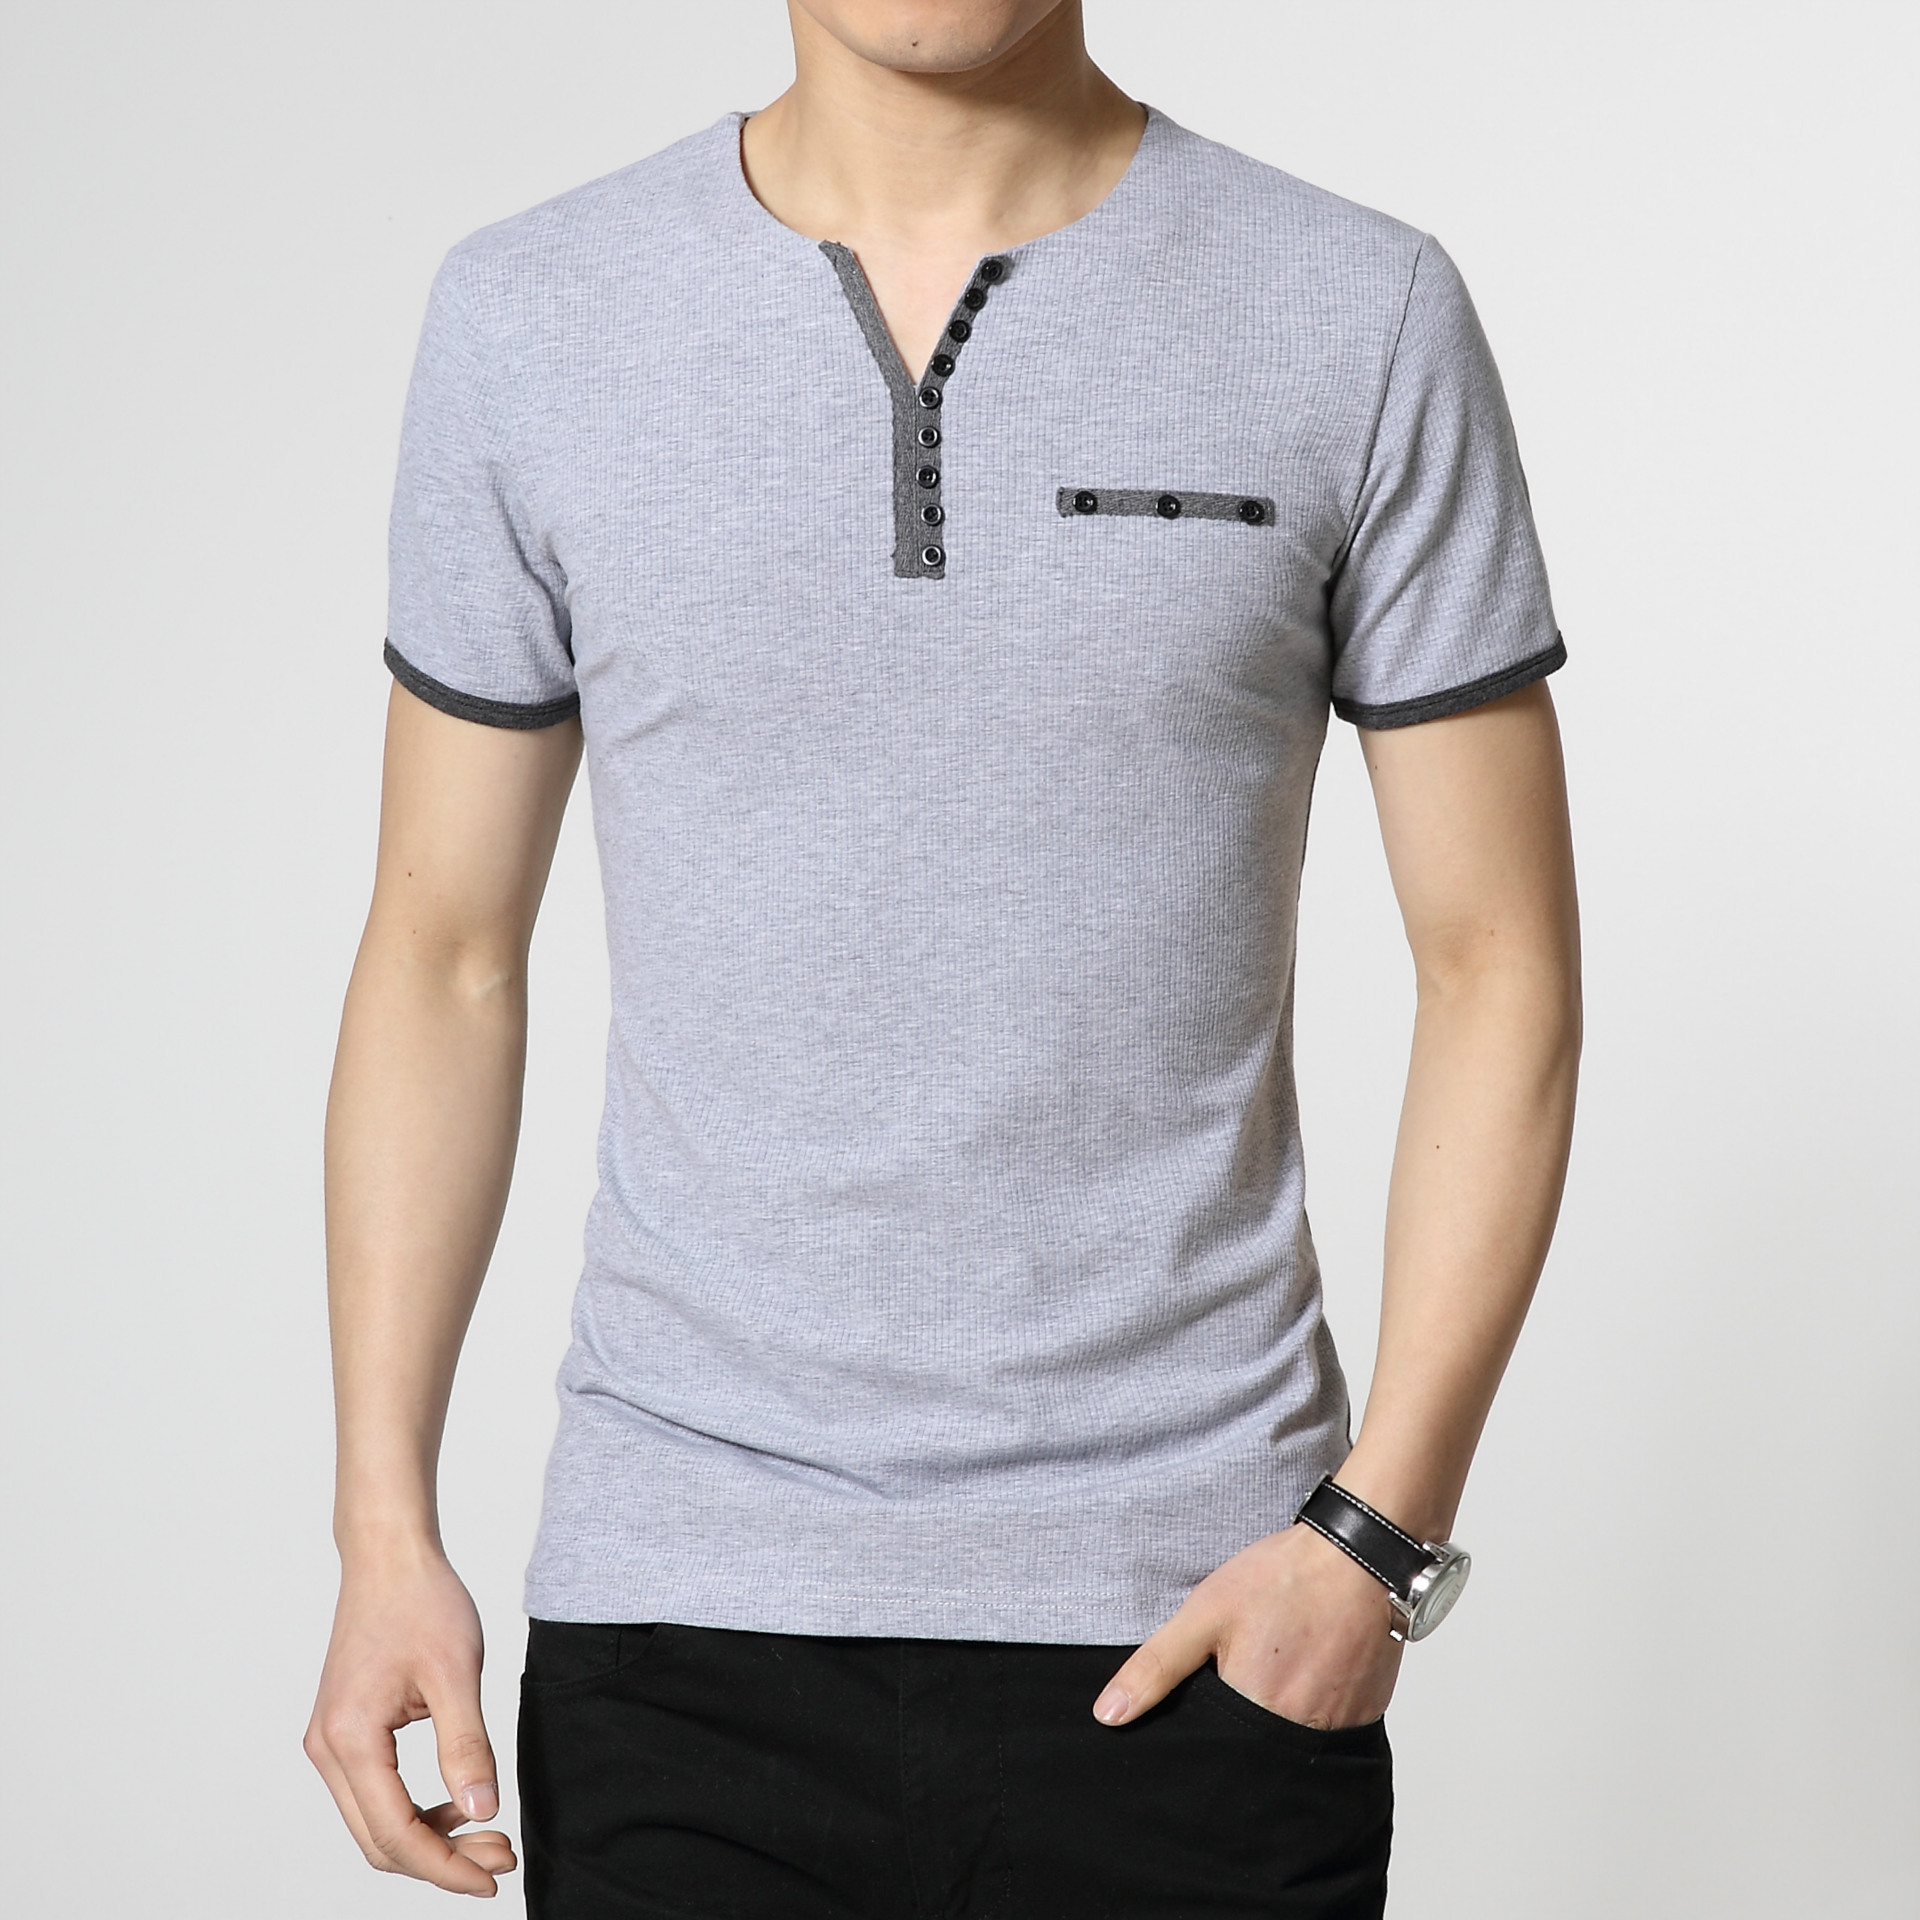 Home > Short Sleeve T-Shirts. Blank T Shirts. Gildan Ultra Cotton Heavyweight T-Shirt. Regular Price: $ Sale Price: $ You Save 80%. Next Level Men's Sueded T-Shirt. Regular Price: $ Sale Price: $ You Save 45%. Fruit of the Loom % Cotton T-Shirt. Regular Price: $